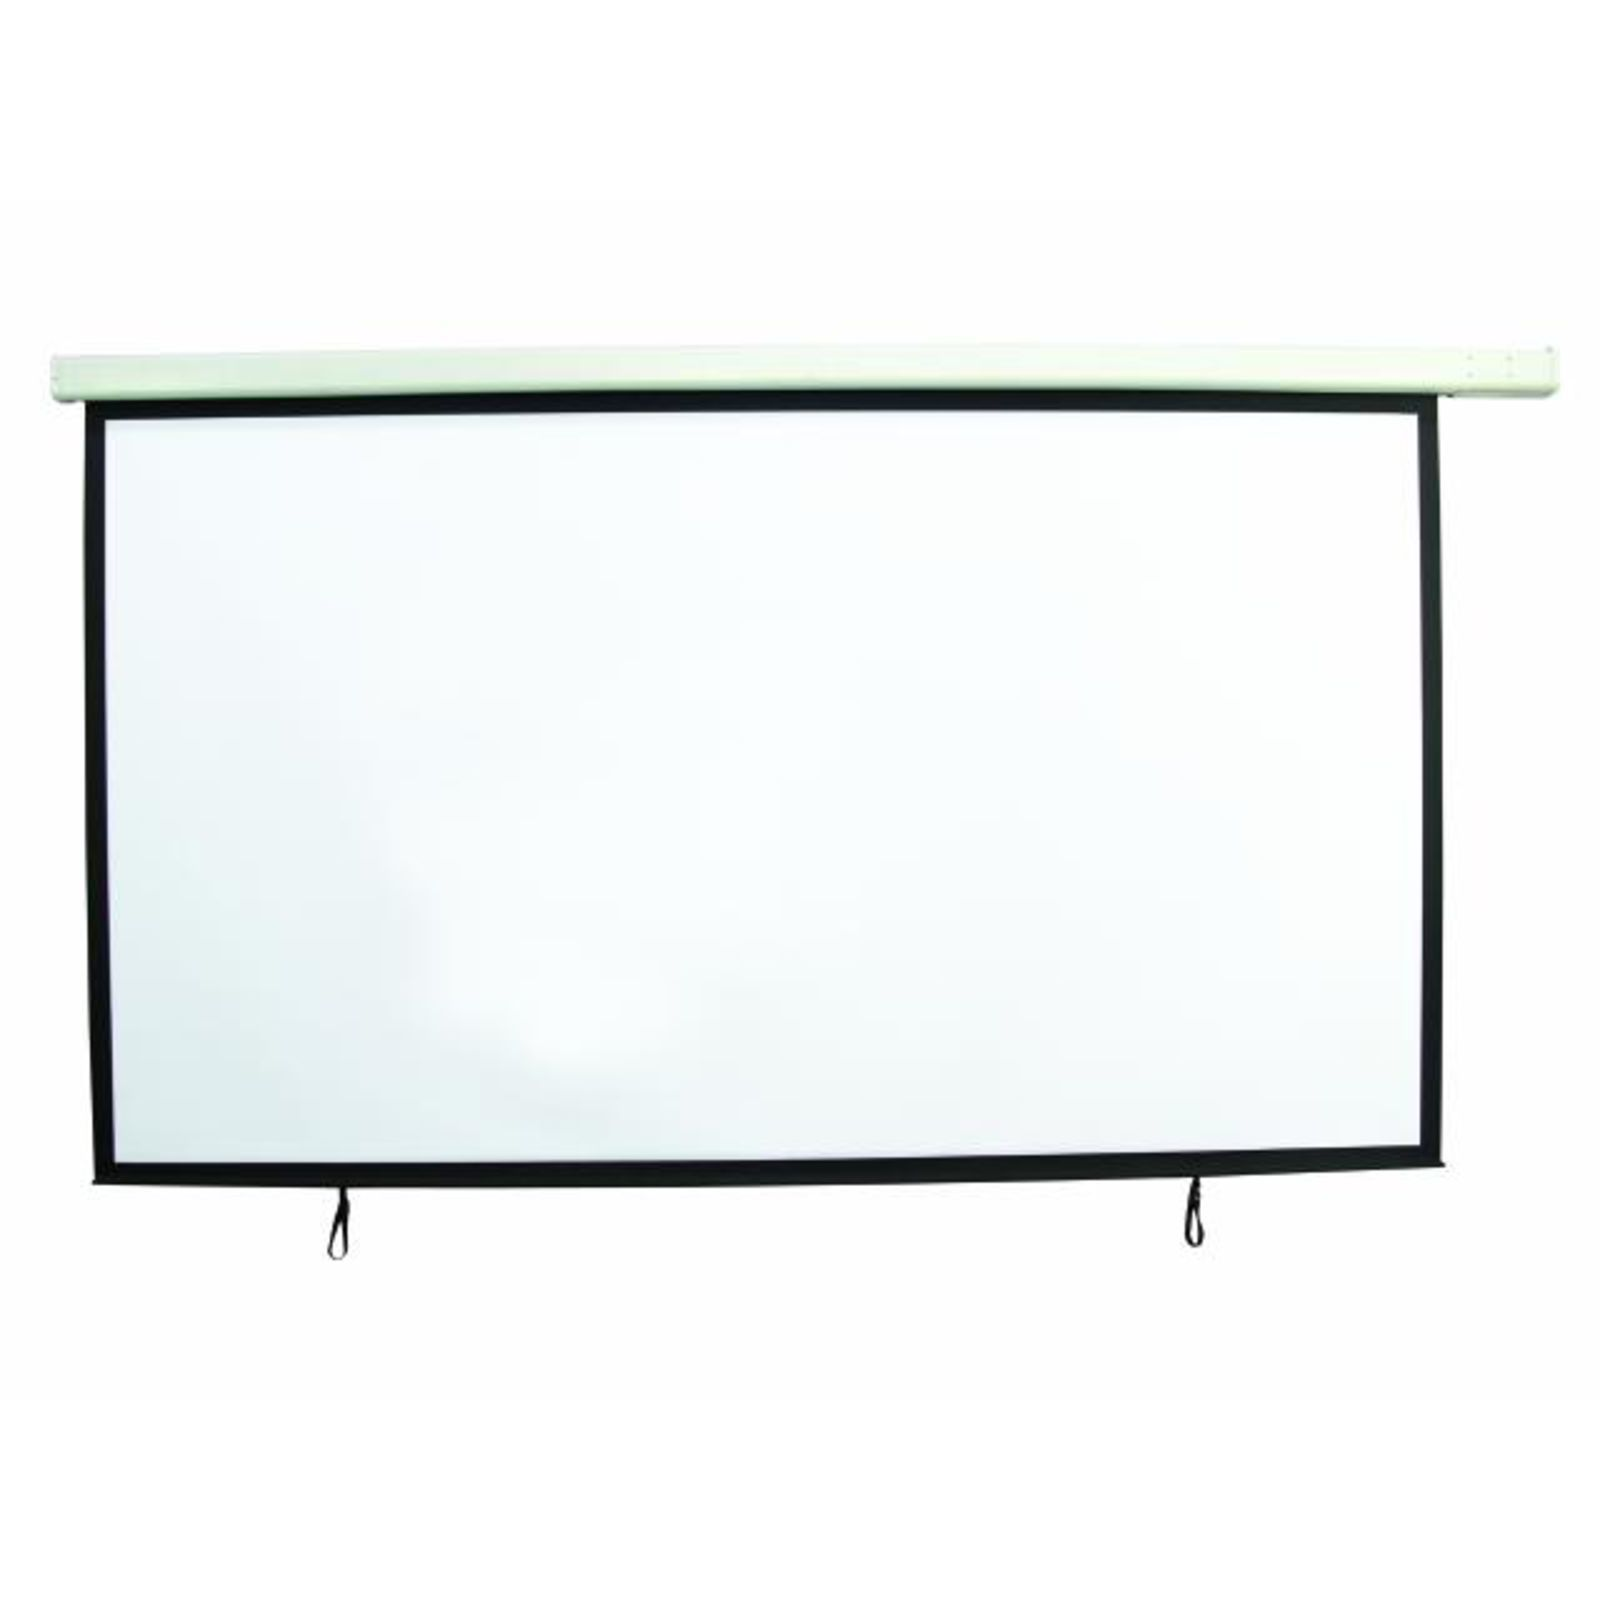 "Eurolite Motorized Screen IR 16:9 360 x 200cm 162"" Produktbillede"